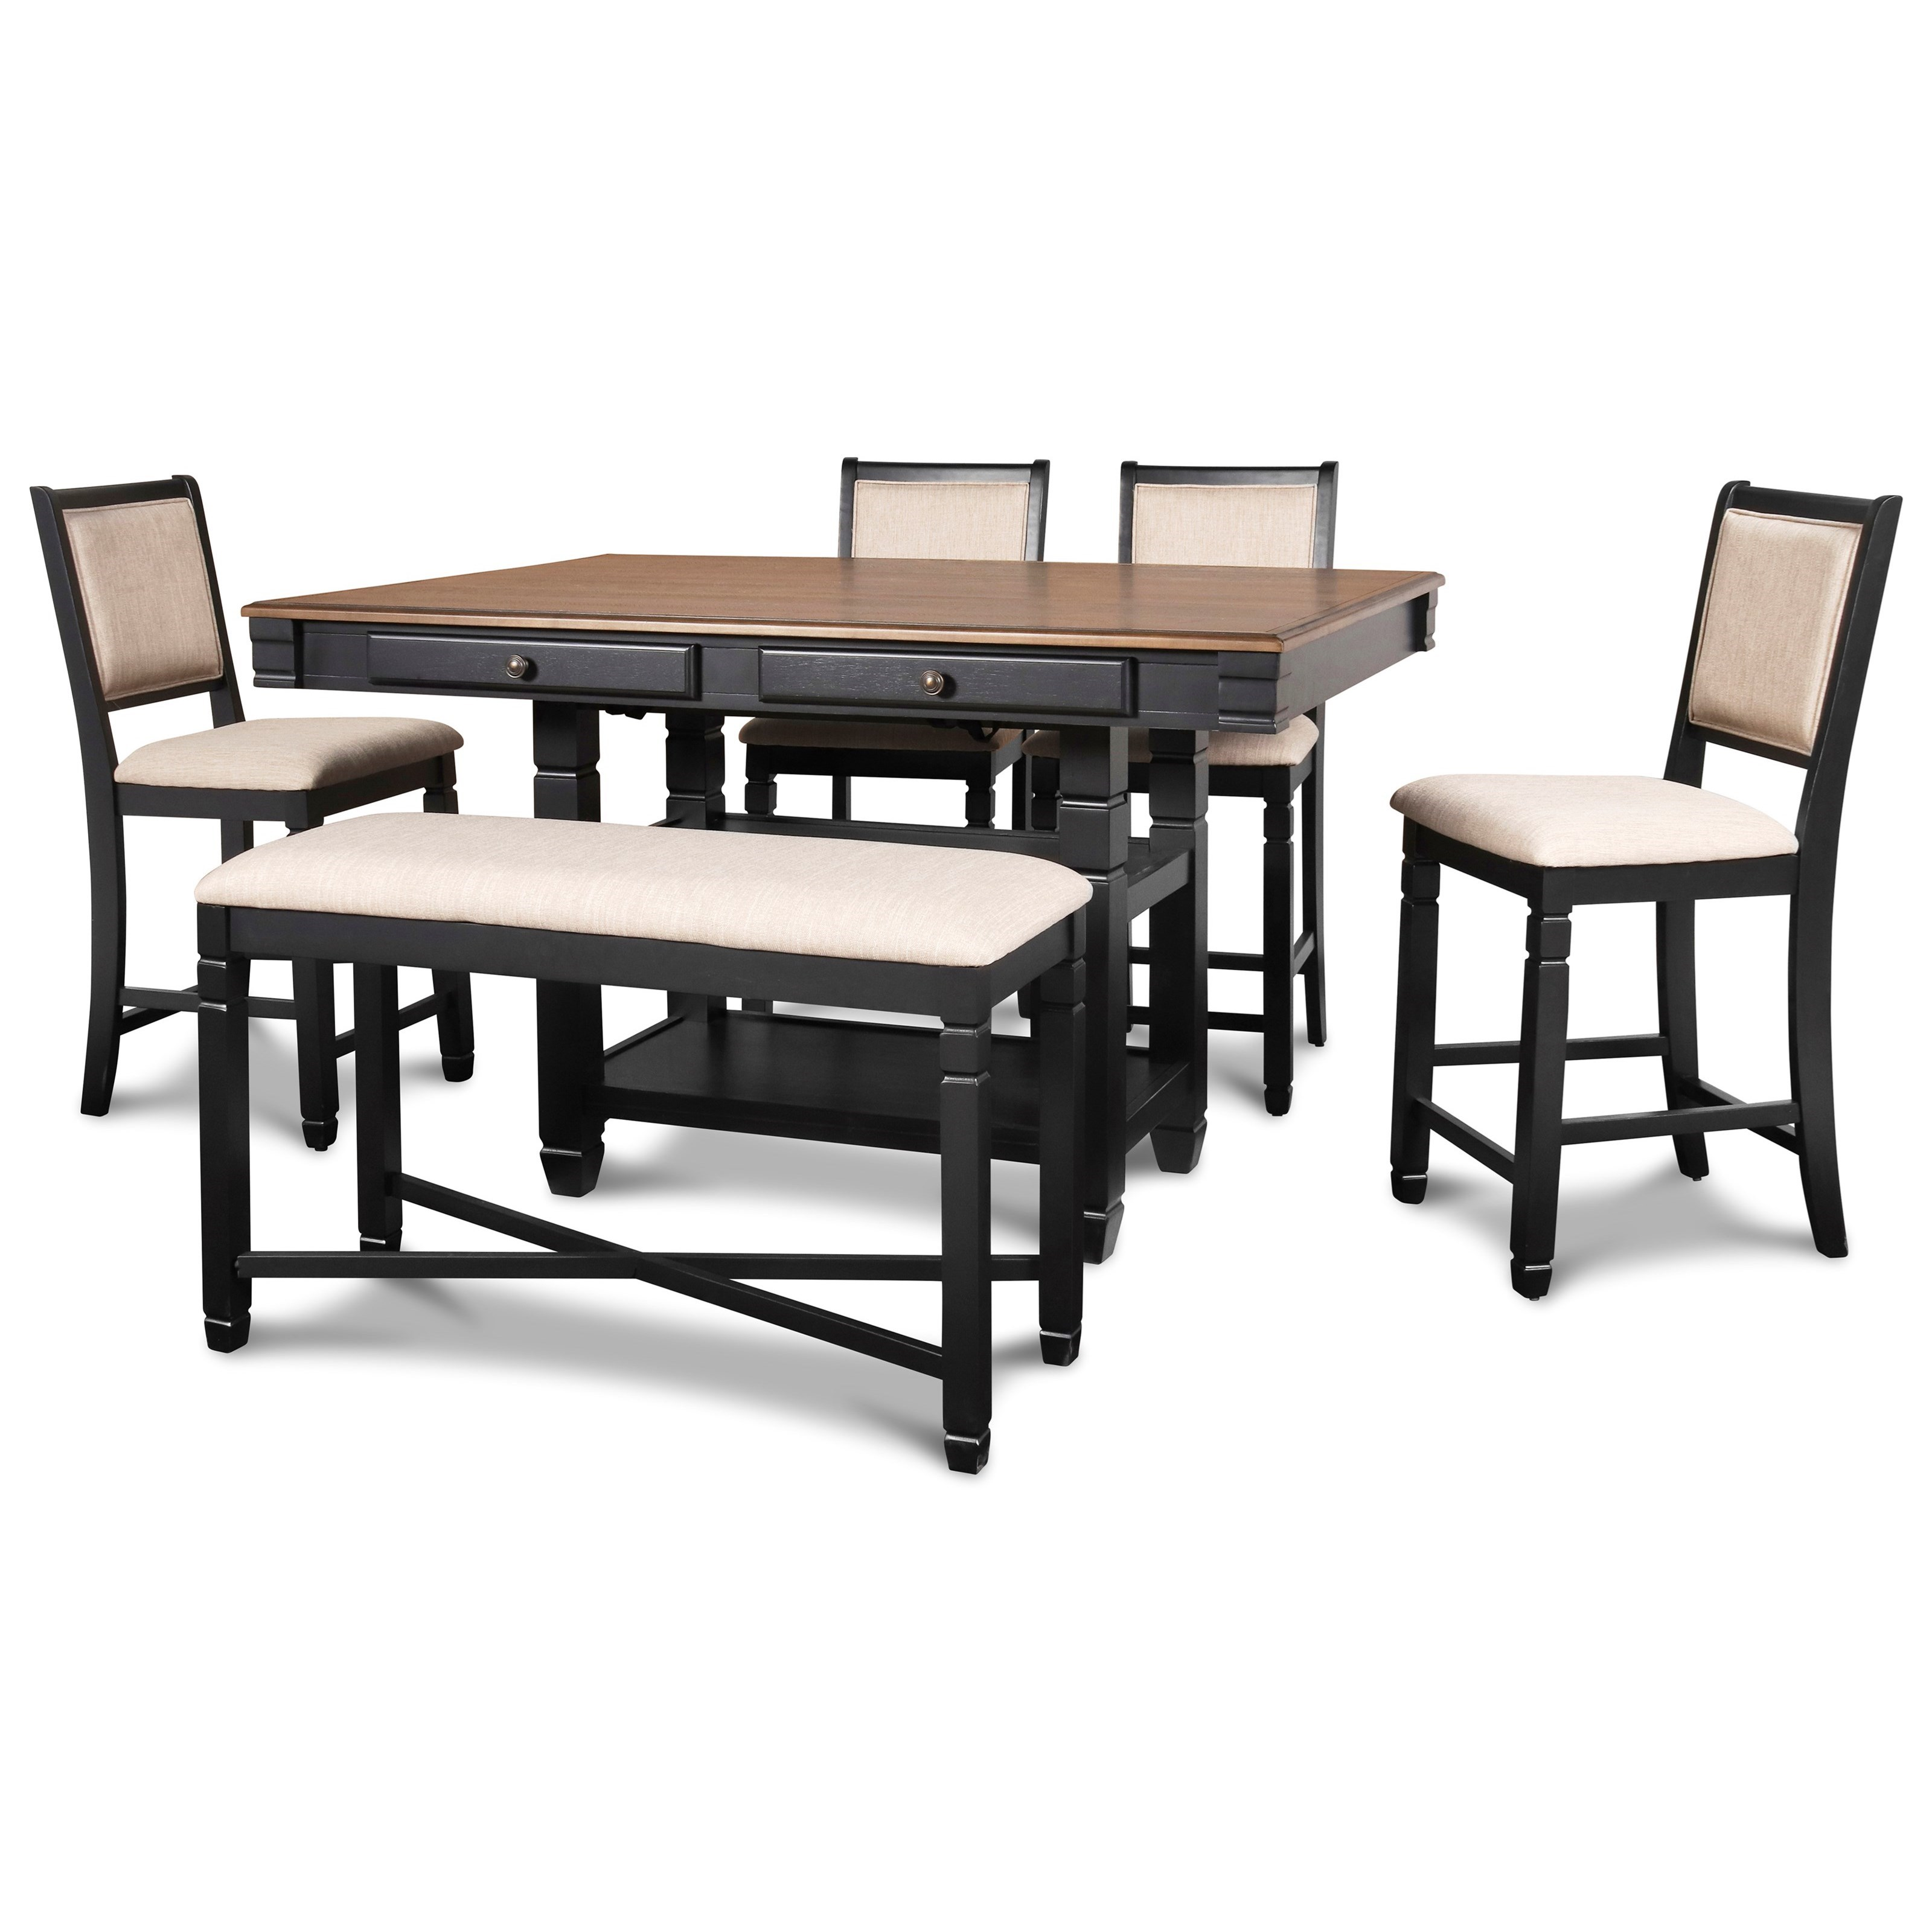 Prairie Point Table & Chair Set with Bench by New Classic at Carolina Direct